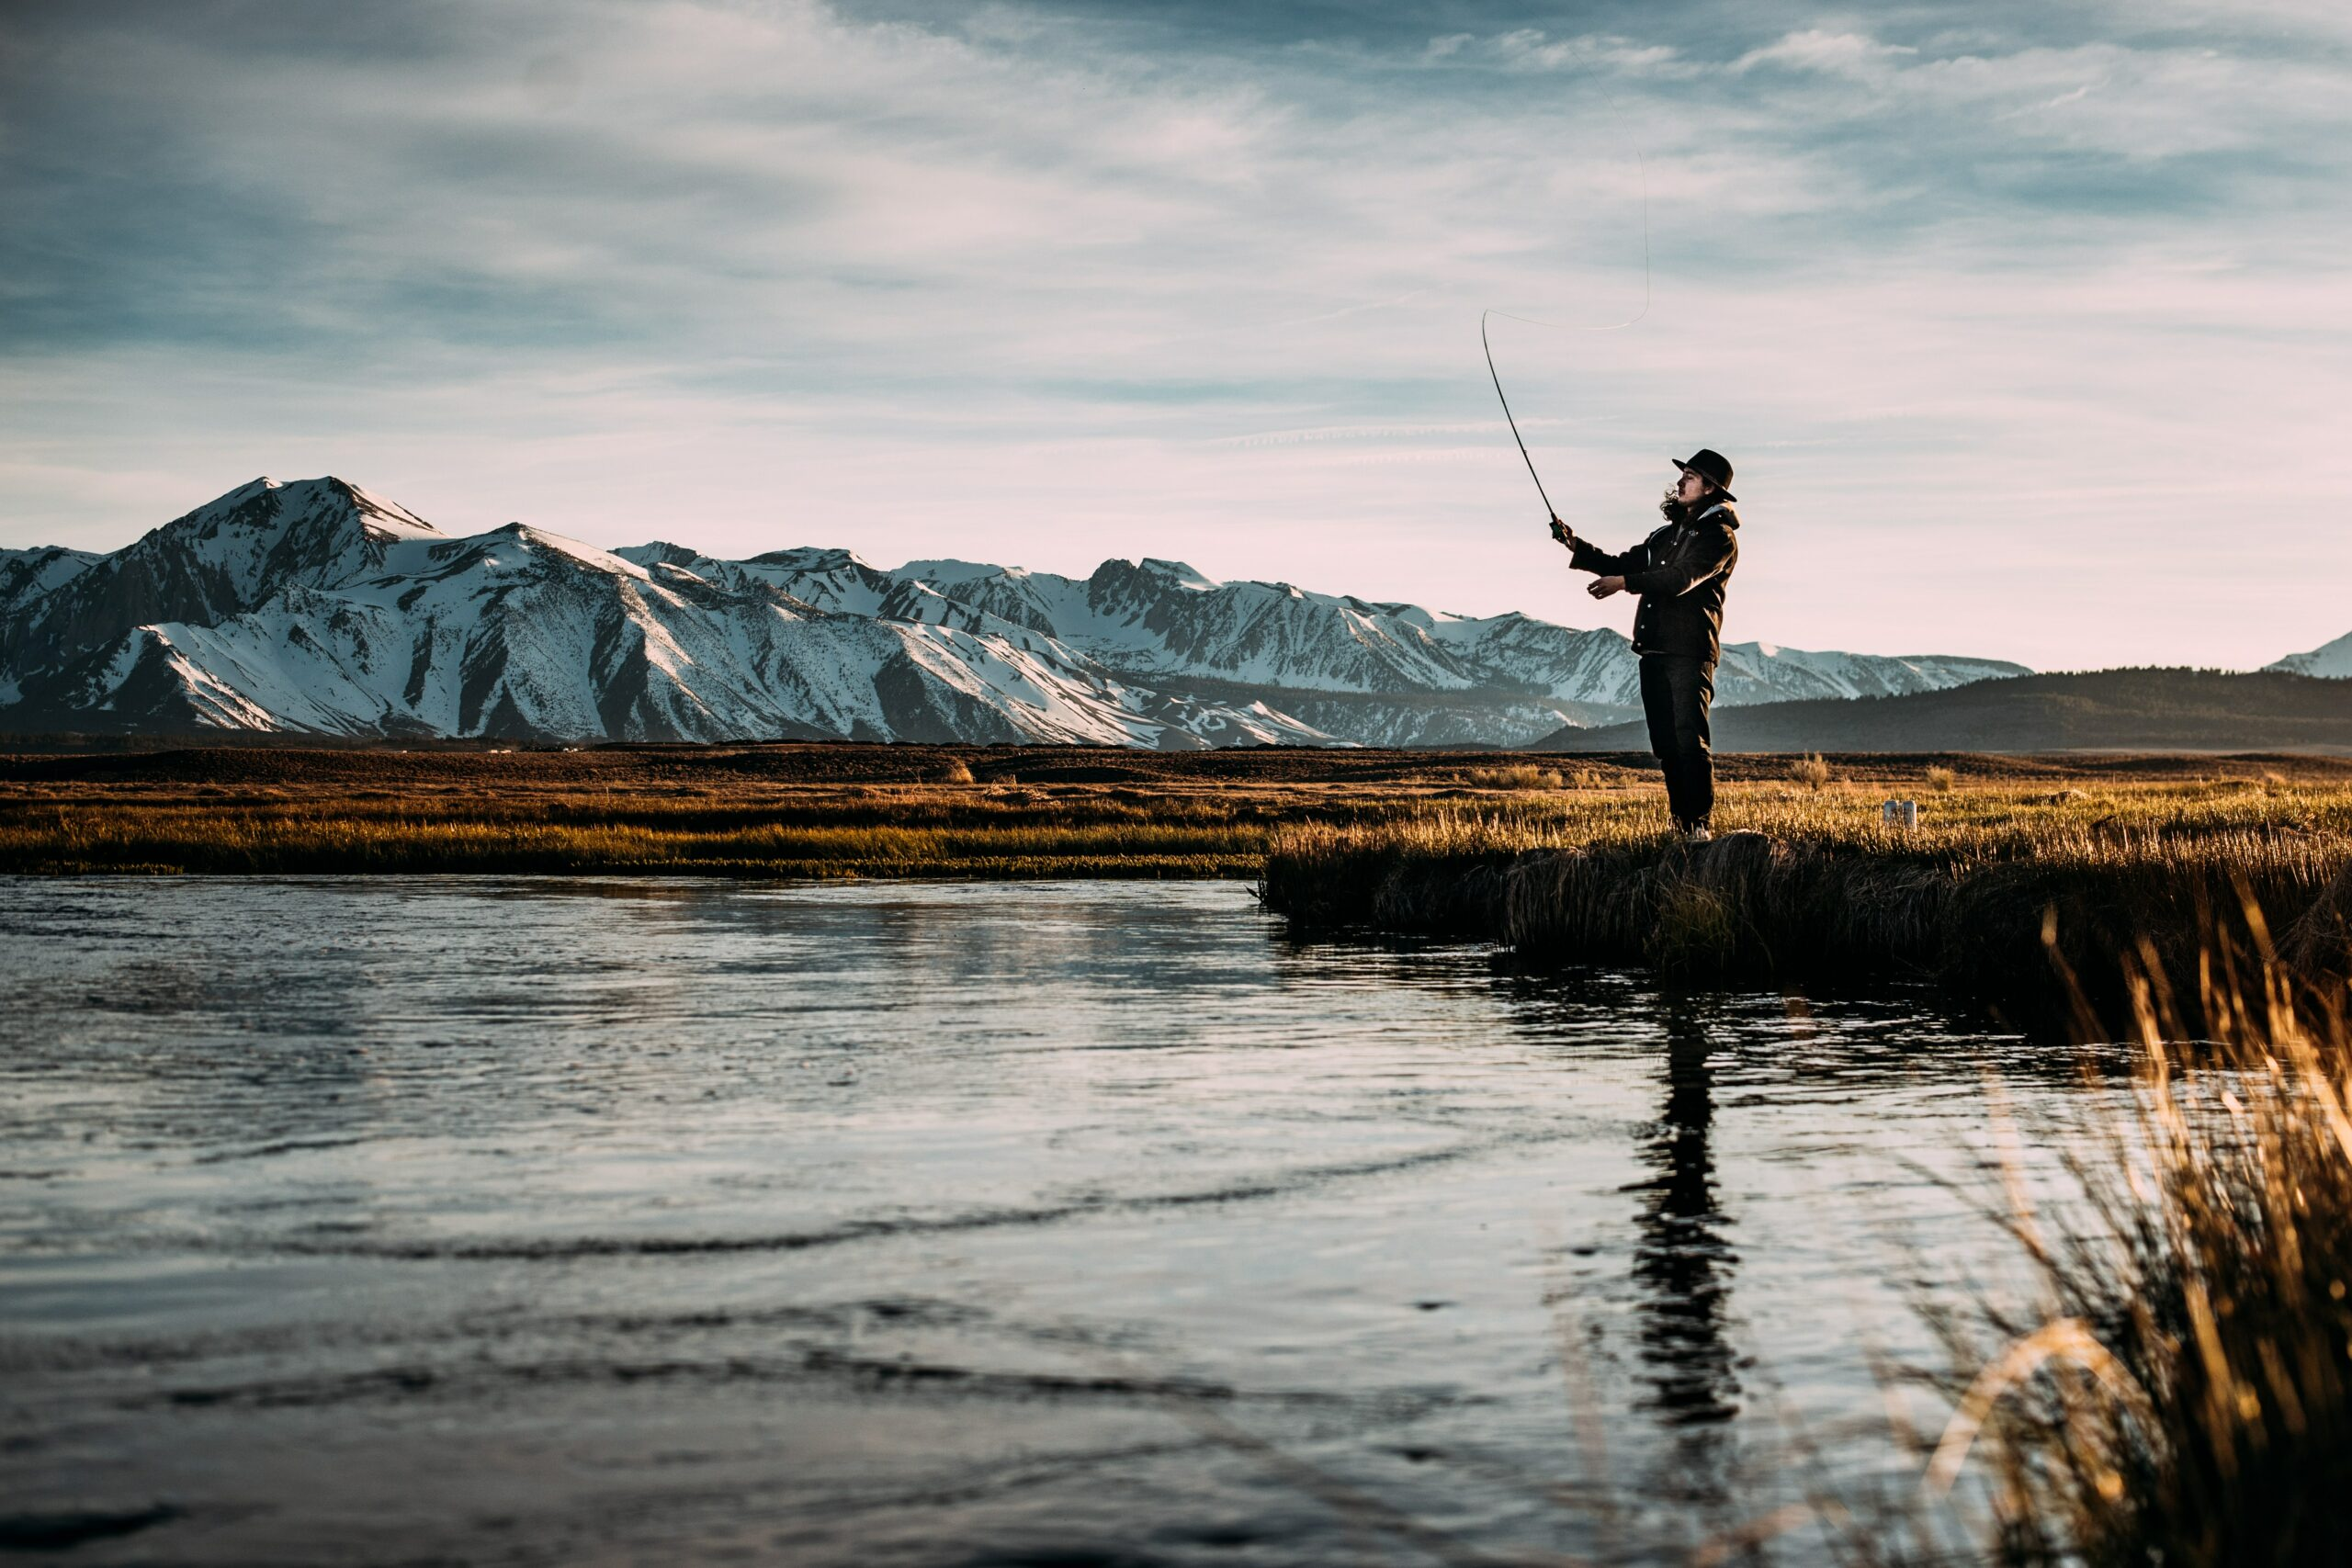 A man flyfishing with a mountain in the background - one of the things to do in Bend, Oregon